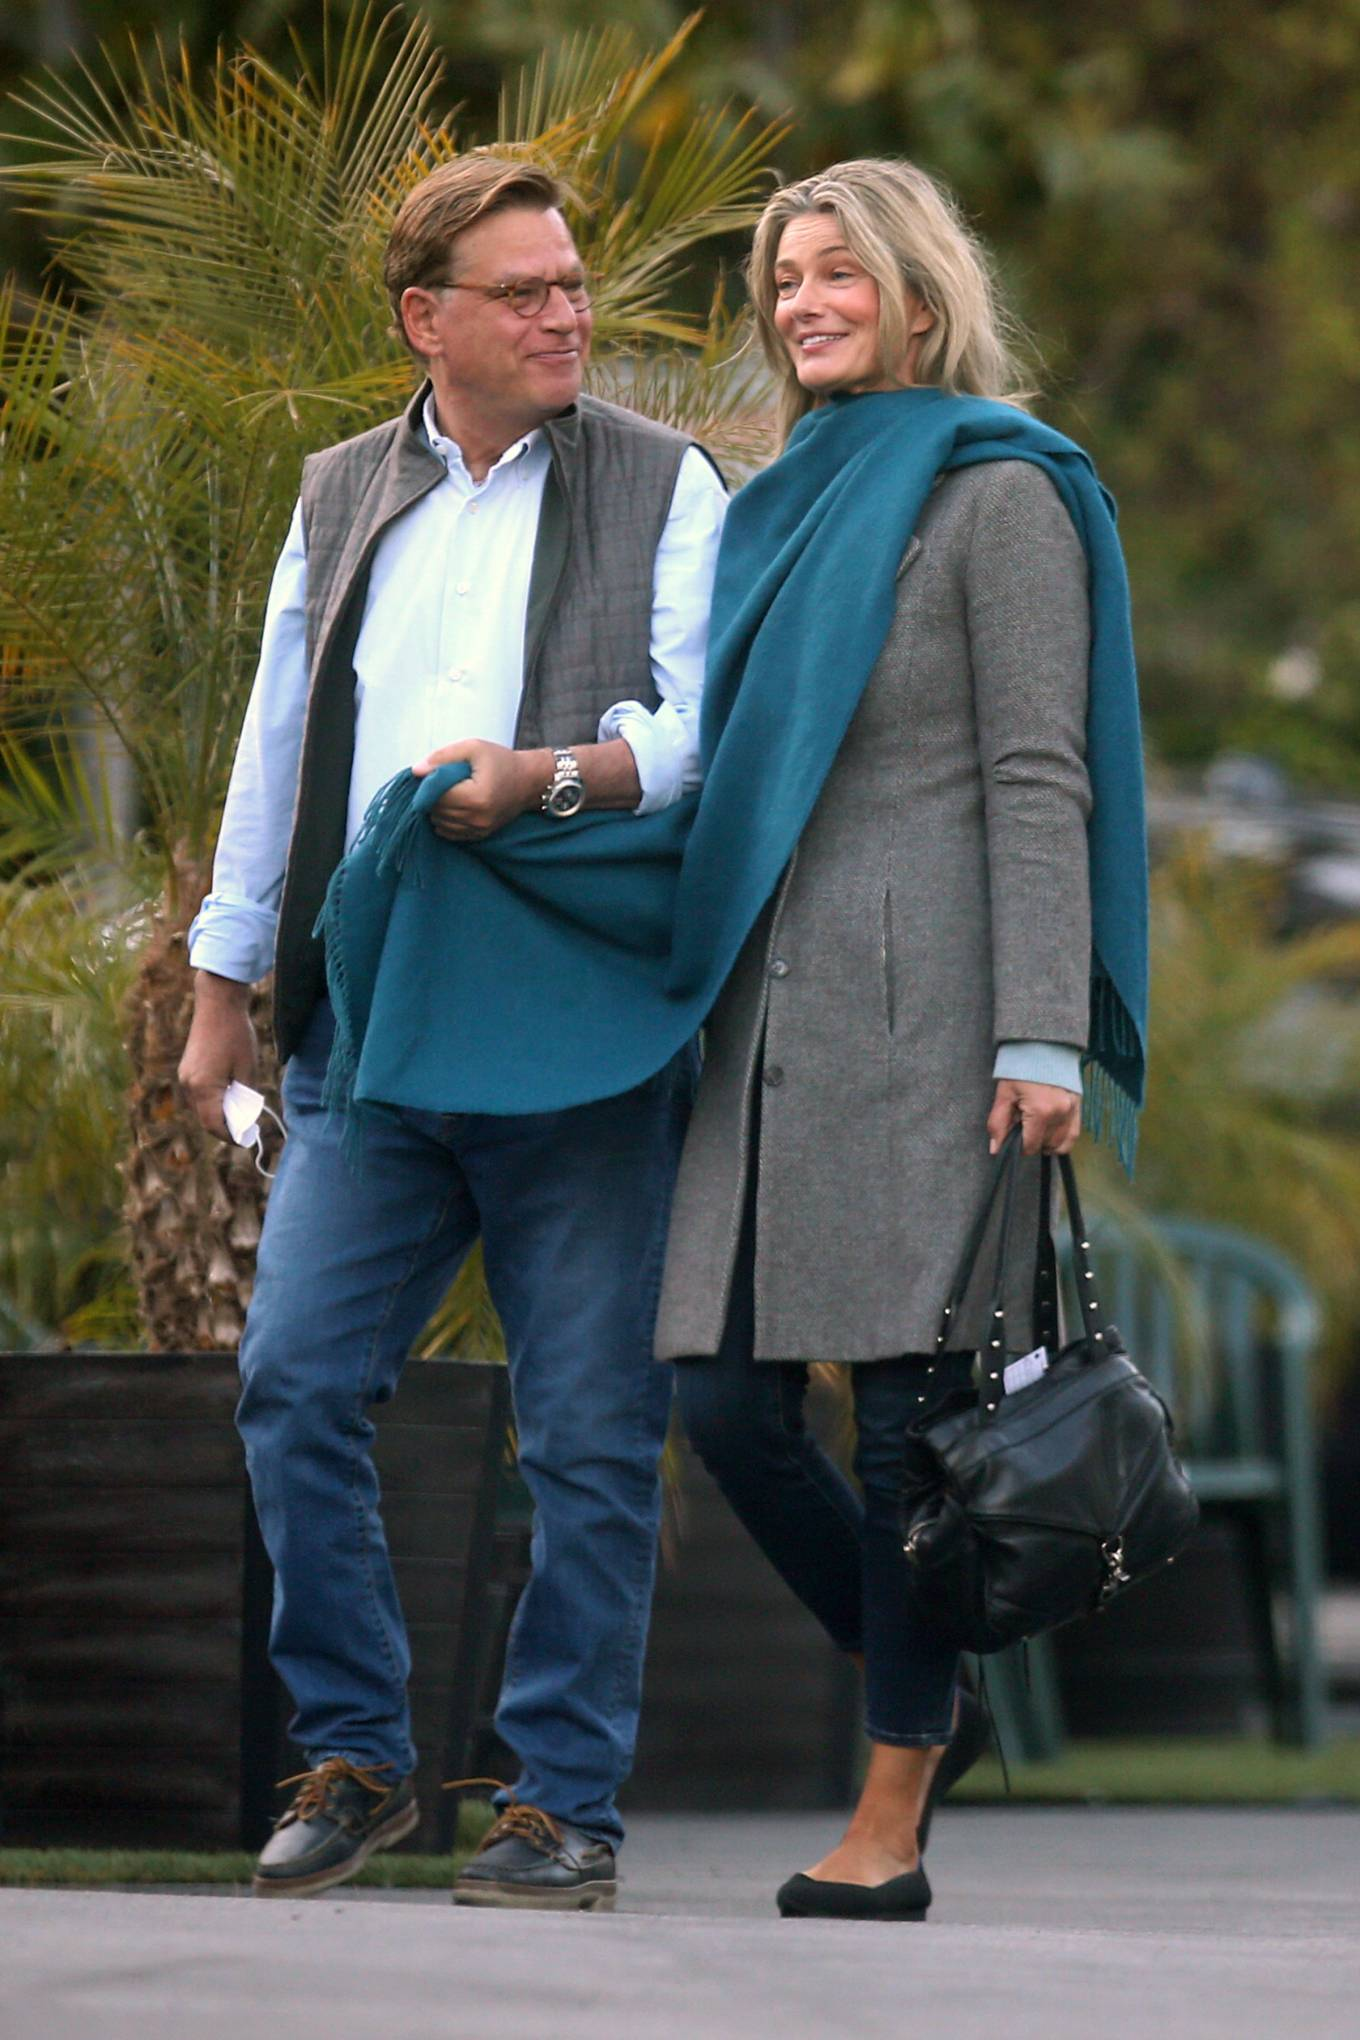 Paulina Porizkova - With Aaron Sorkin meet up for a diner date in Los Angeles